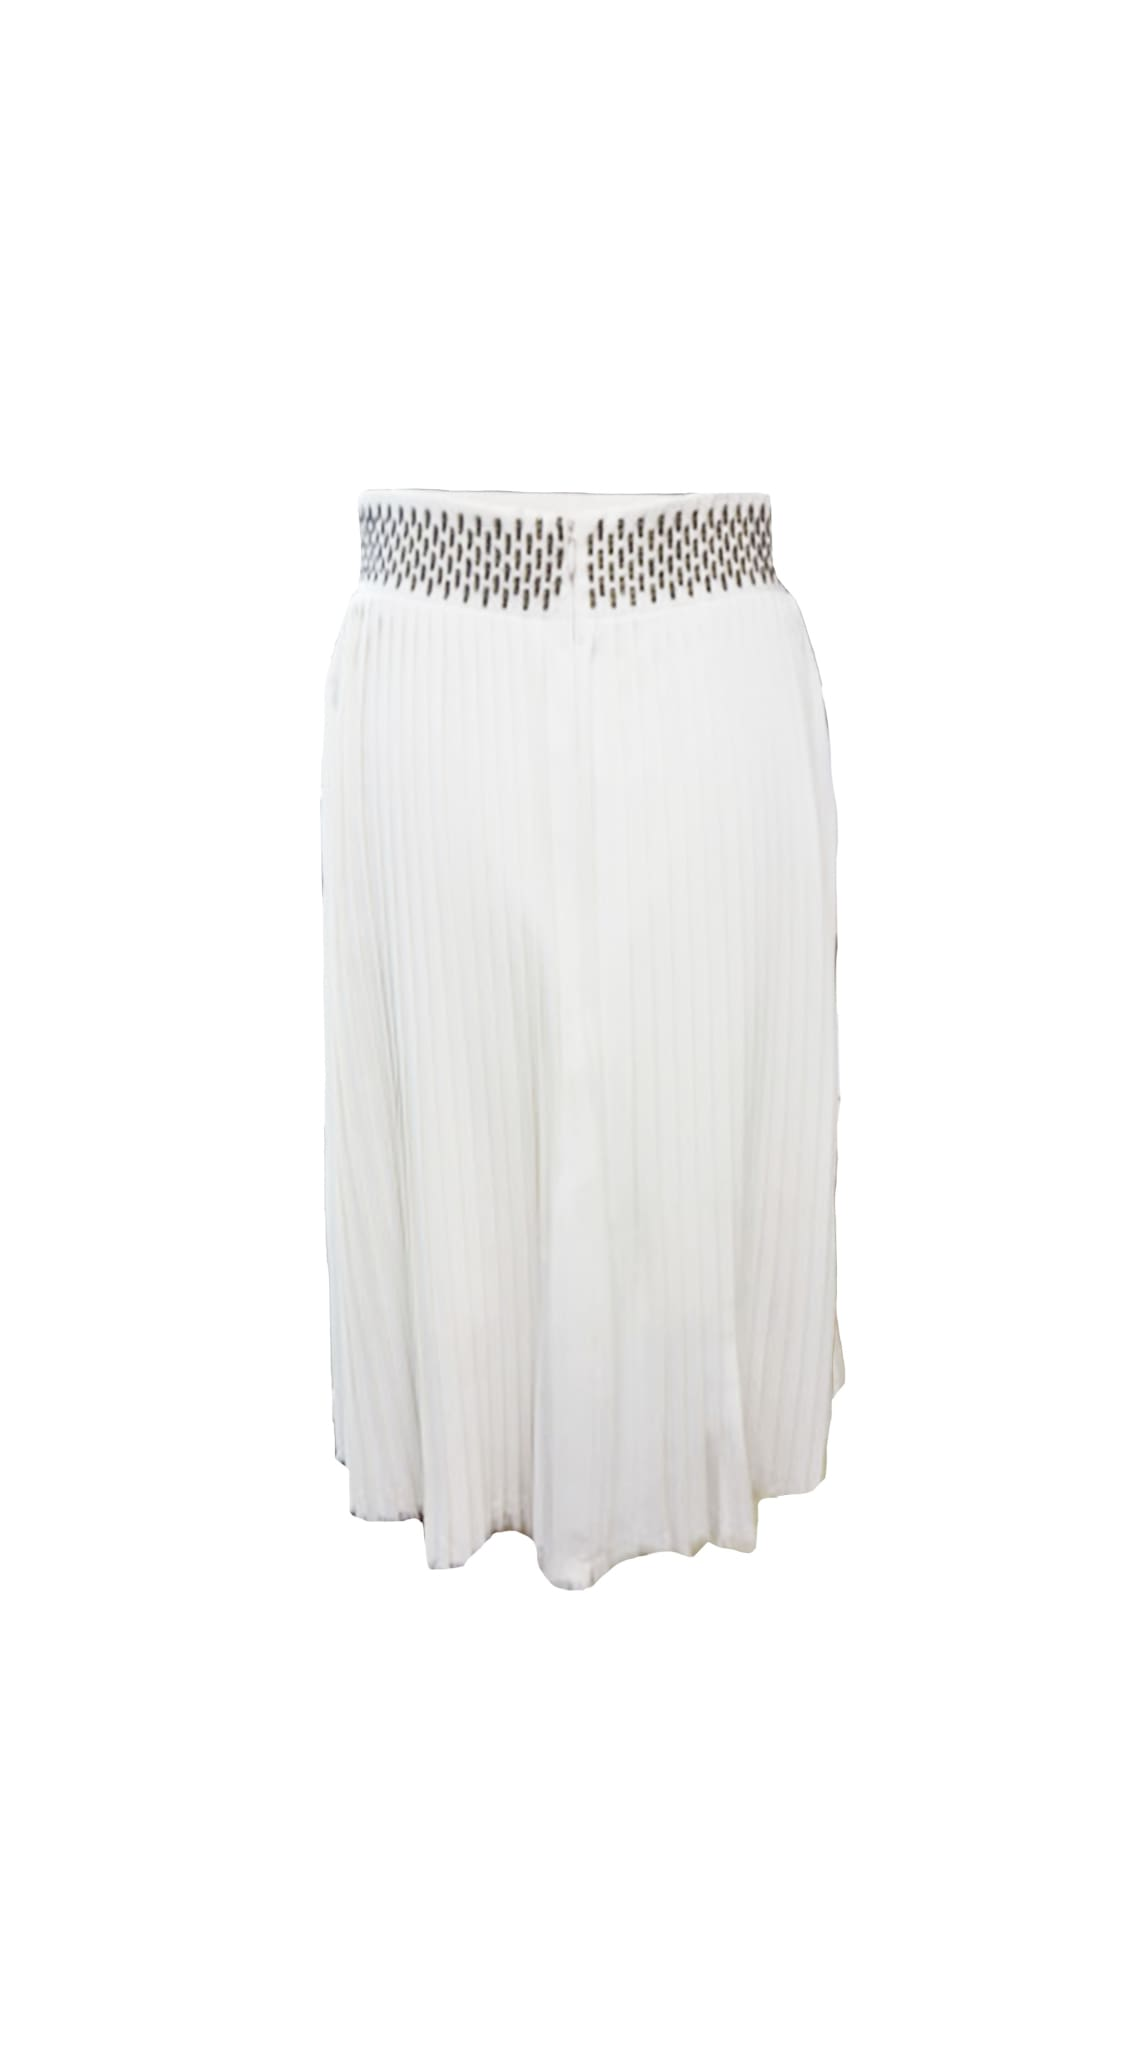 Pleated A-Line Cream Skirt by fashion designer Chanho Jang of South Korea | Nineteenth Amendment made in the USA